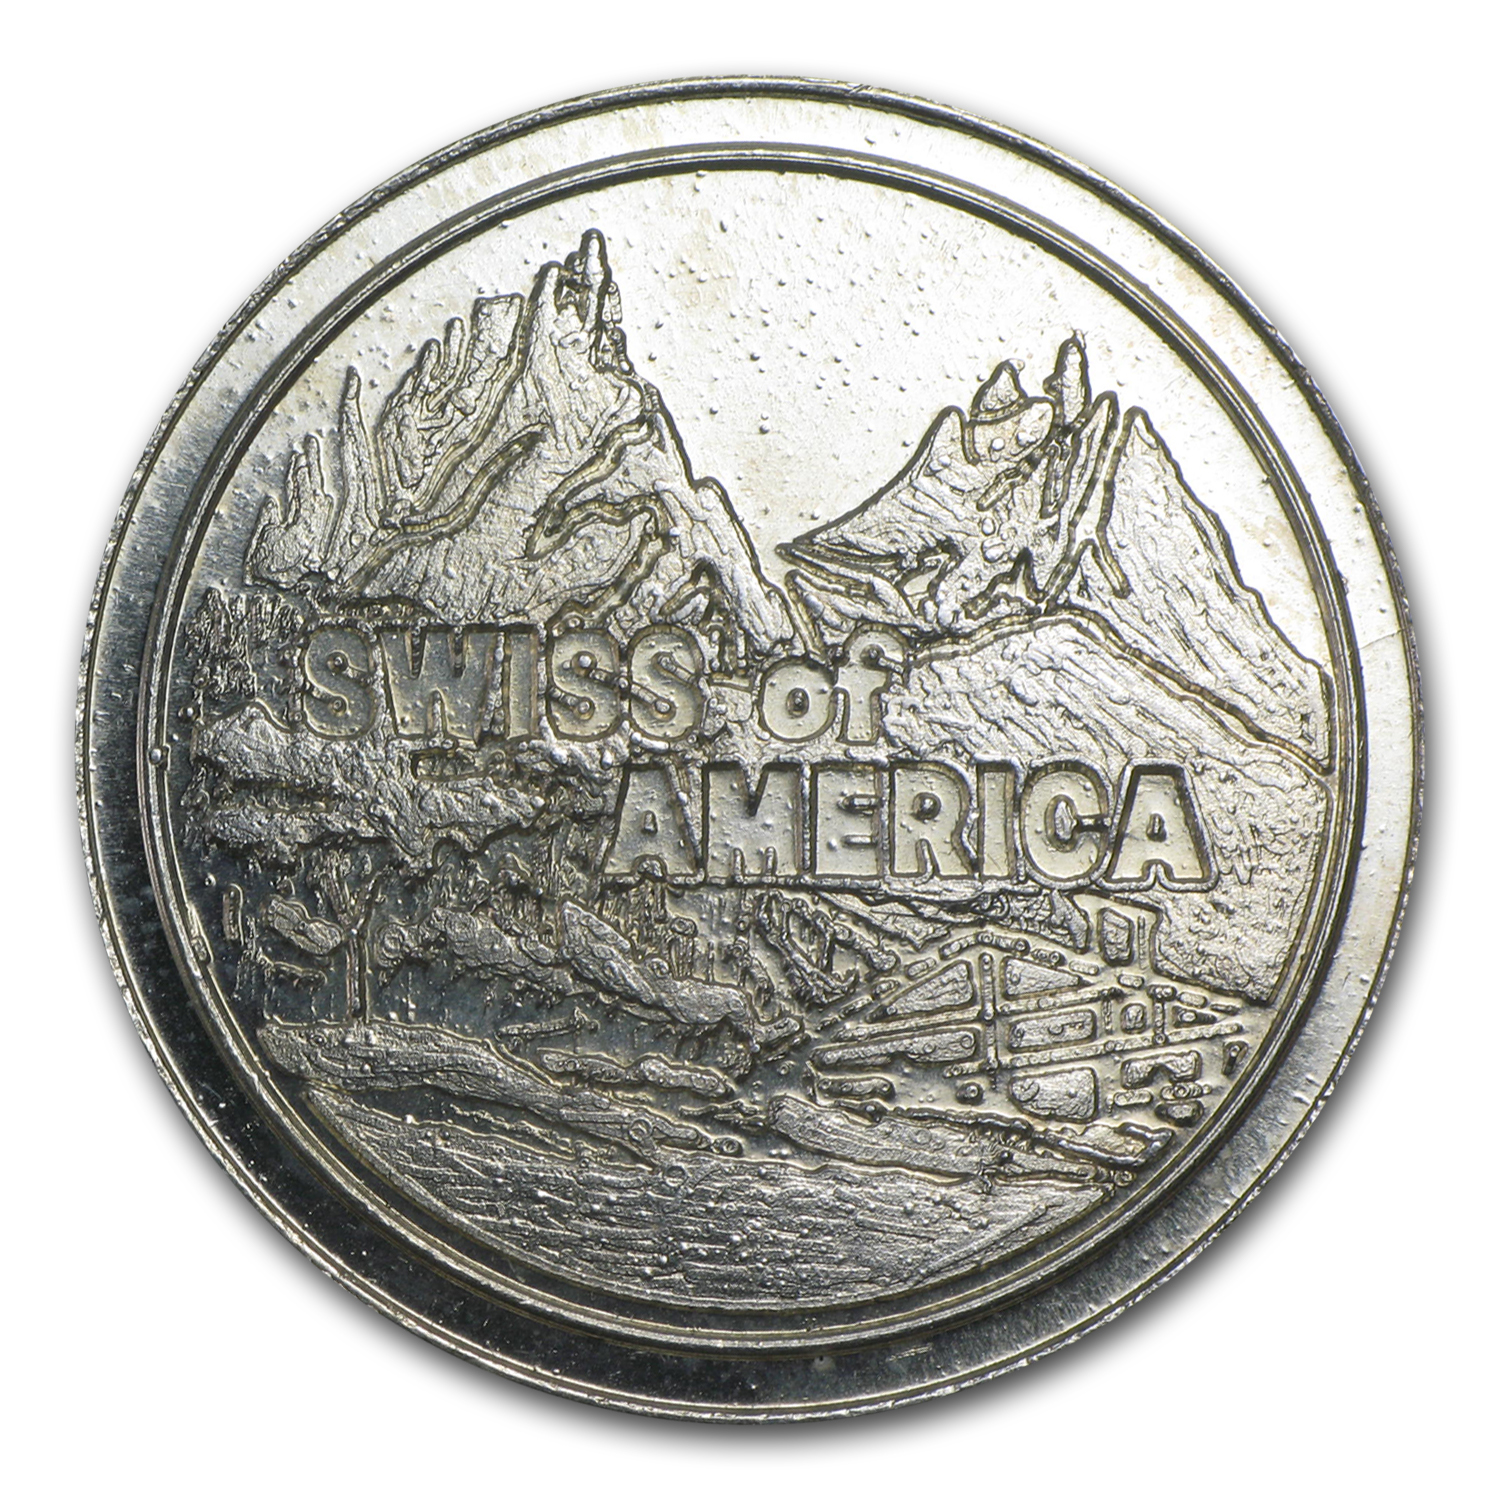 1 oz Silver Round - Swiss of America (38 mm)